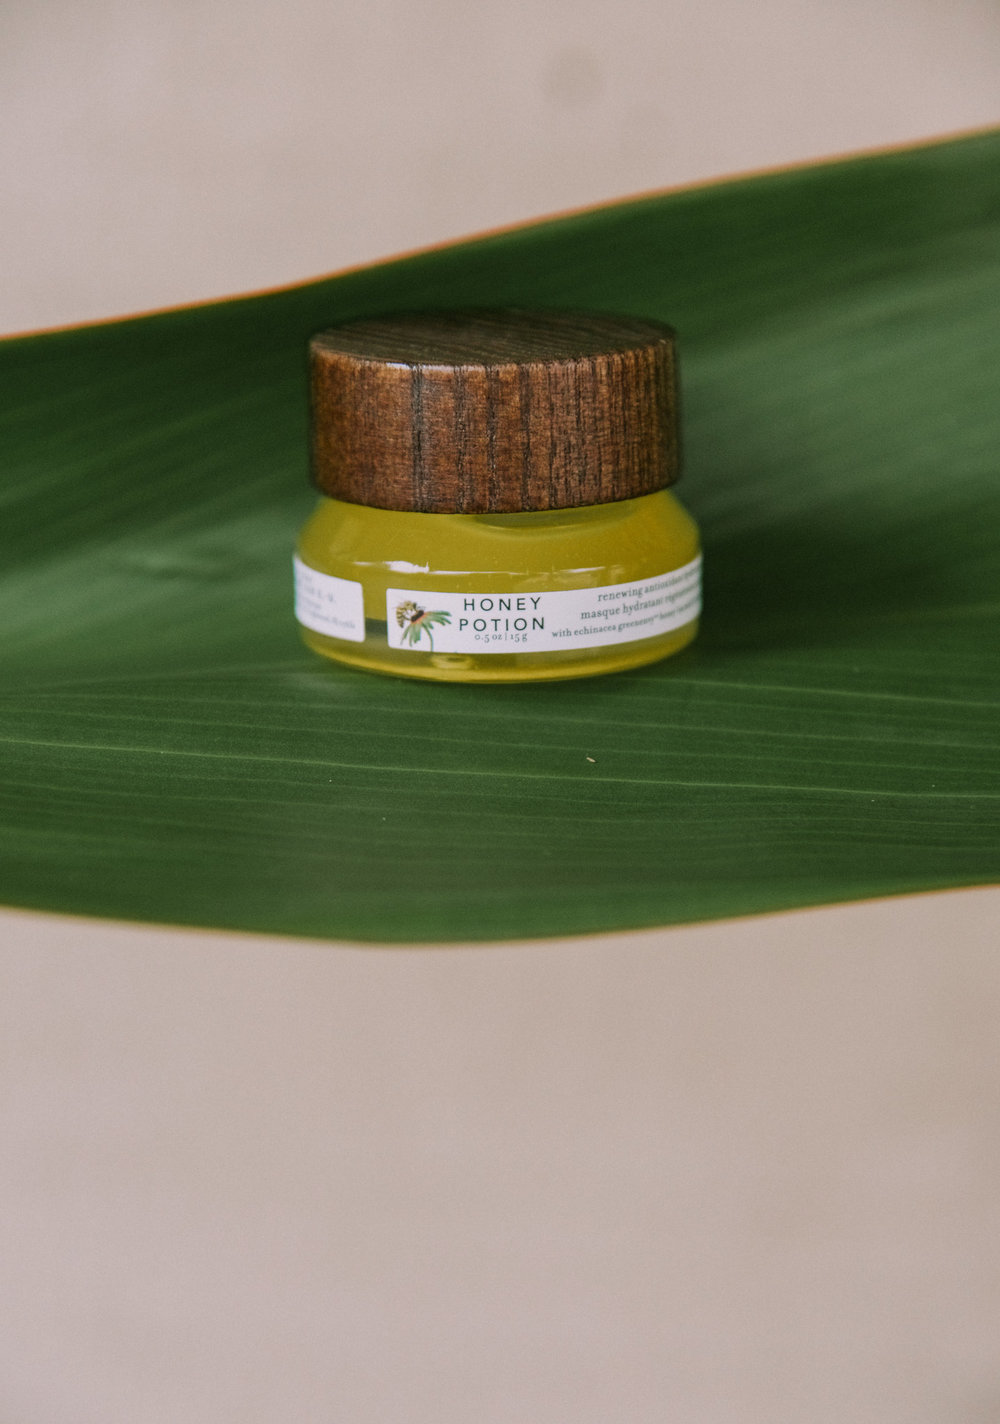 Honey Potion | Mask - This little bottle contains mask magic and rounds out the honey products. You apply this mask to clean skin from your jawline on up to your forehead. When you massage into your face, it transforms into a cream that you leave on for 15 minutes or so and then rinse. You're left with glowing, hydrated skin. VITALS:• Infused with natural antioxidants • Contains propolis and aminco acide-rich jelly to target dry skin